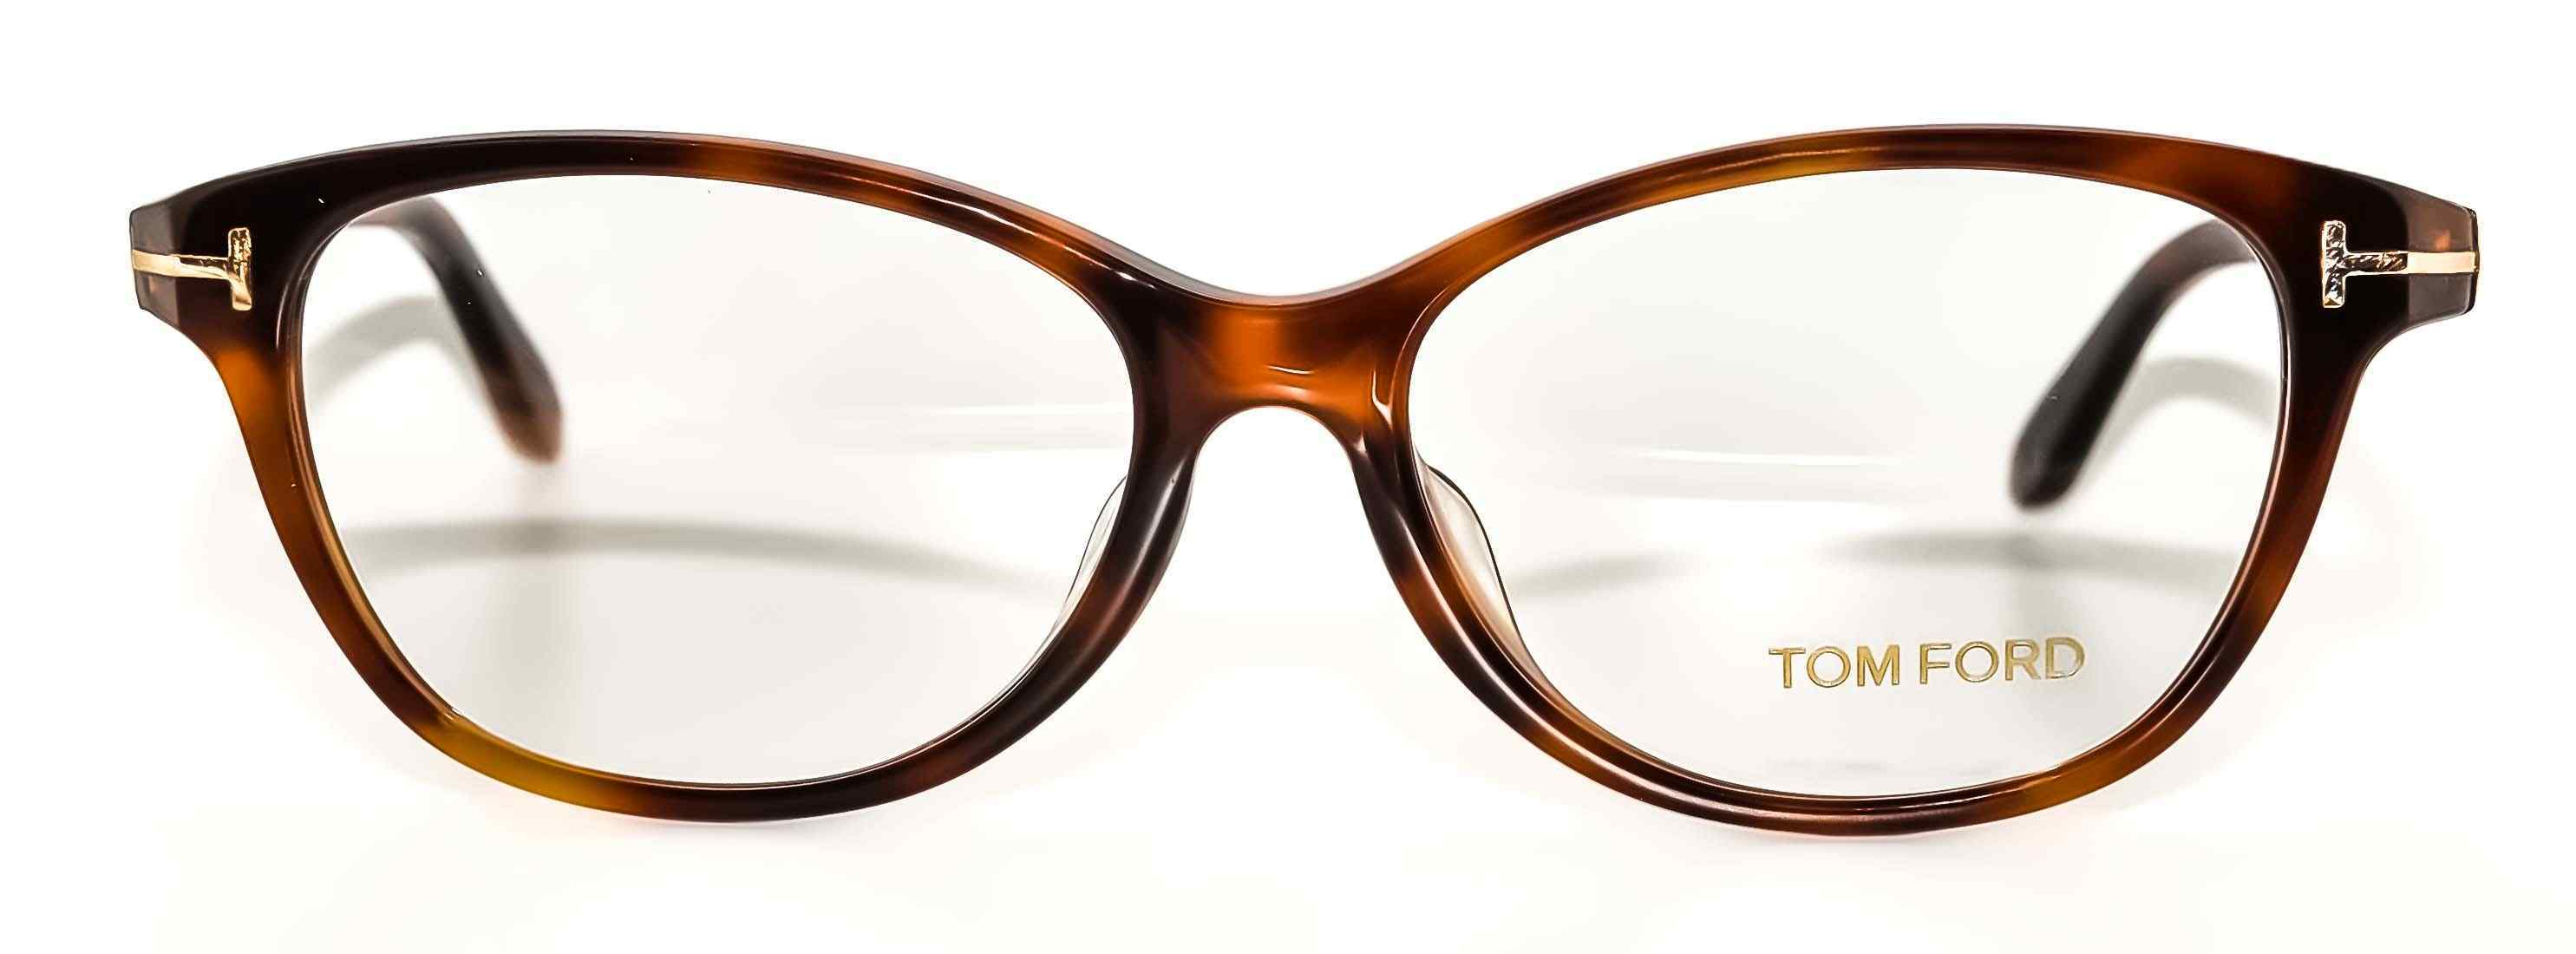 Tom Ford spectacles 4299 52 1 2970x1100